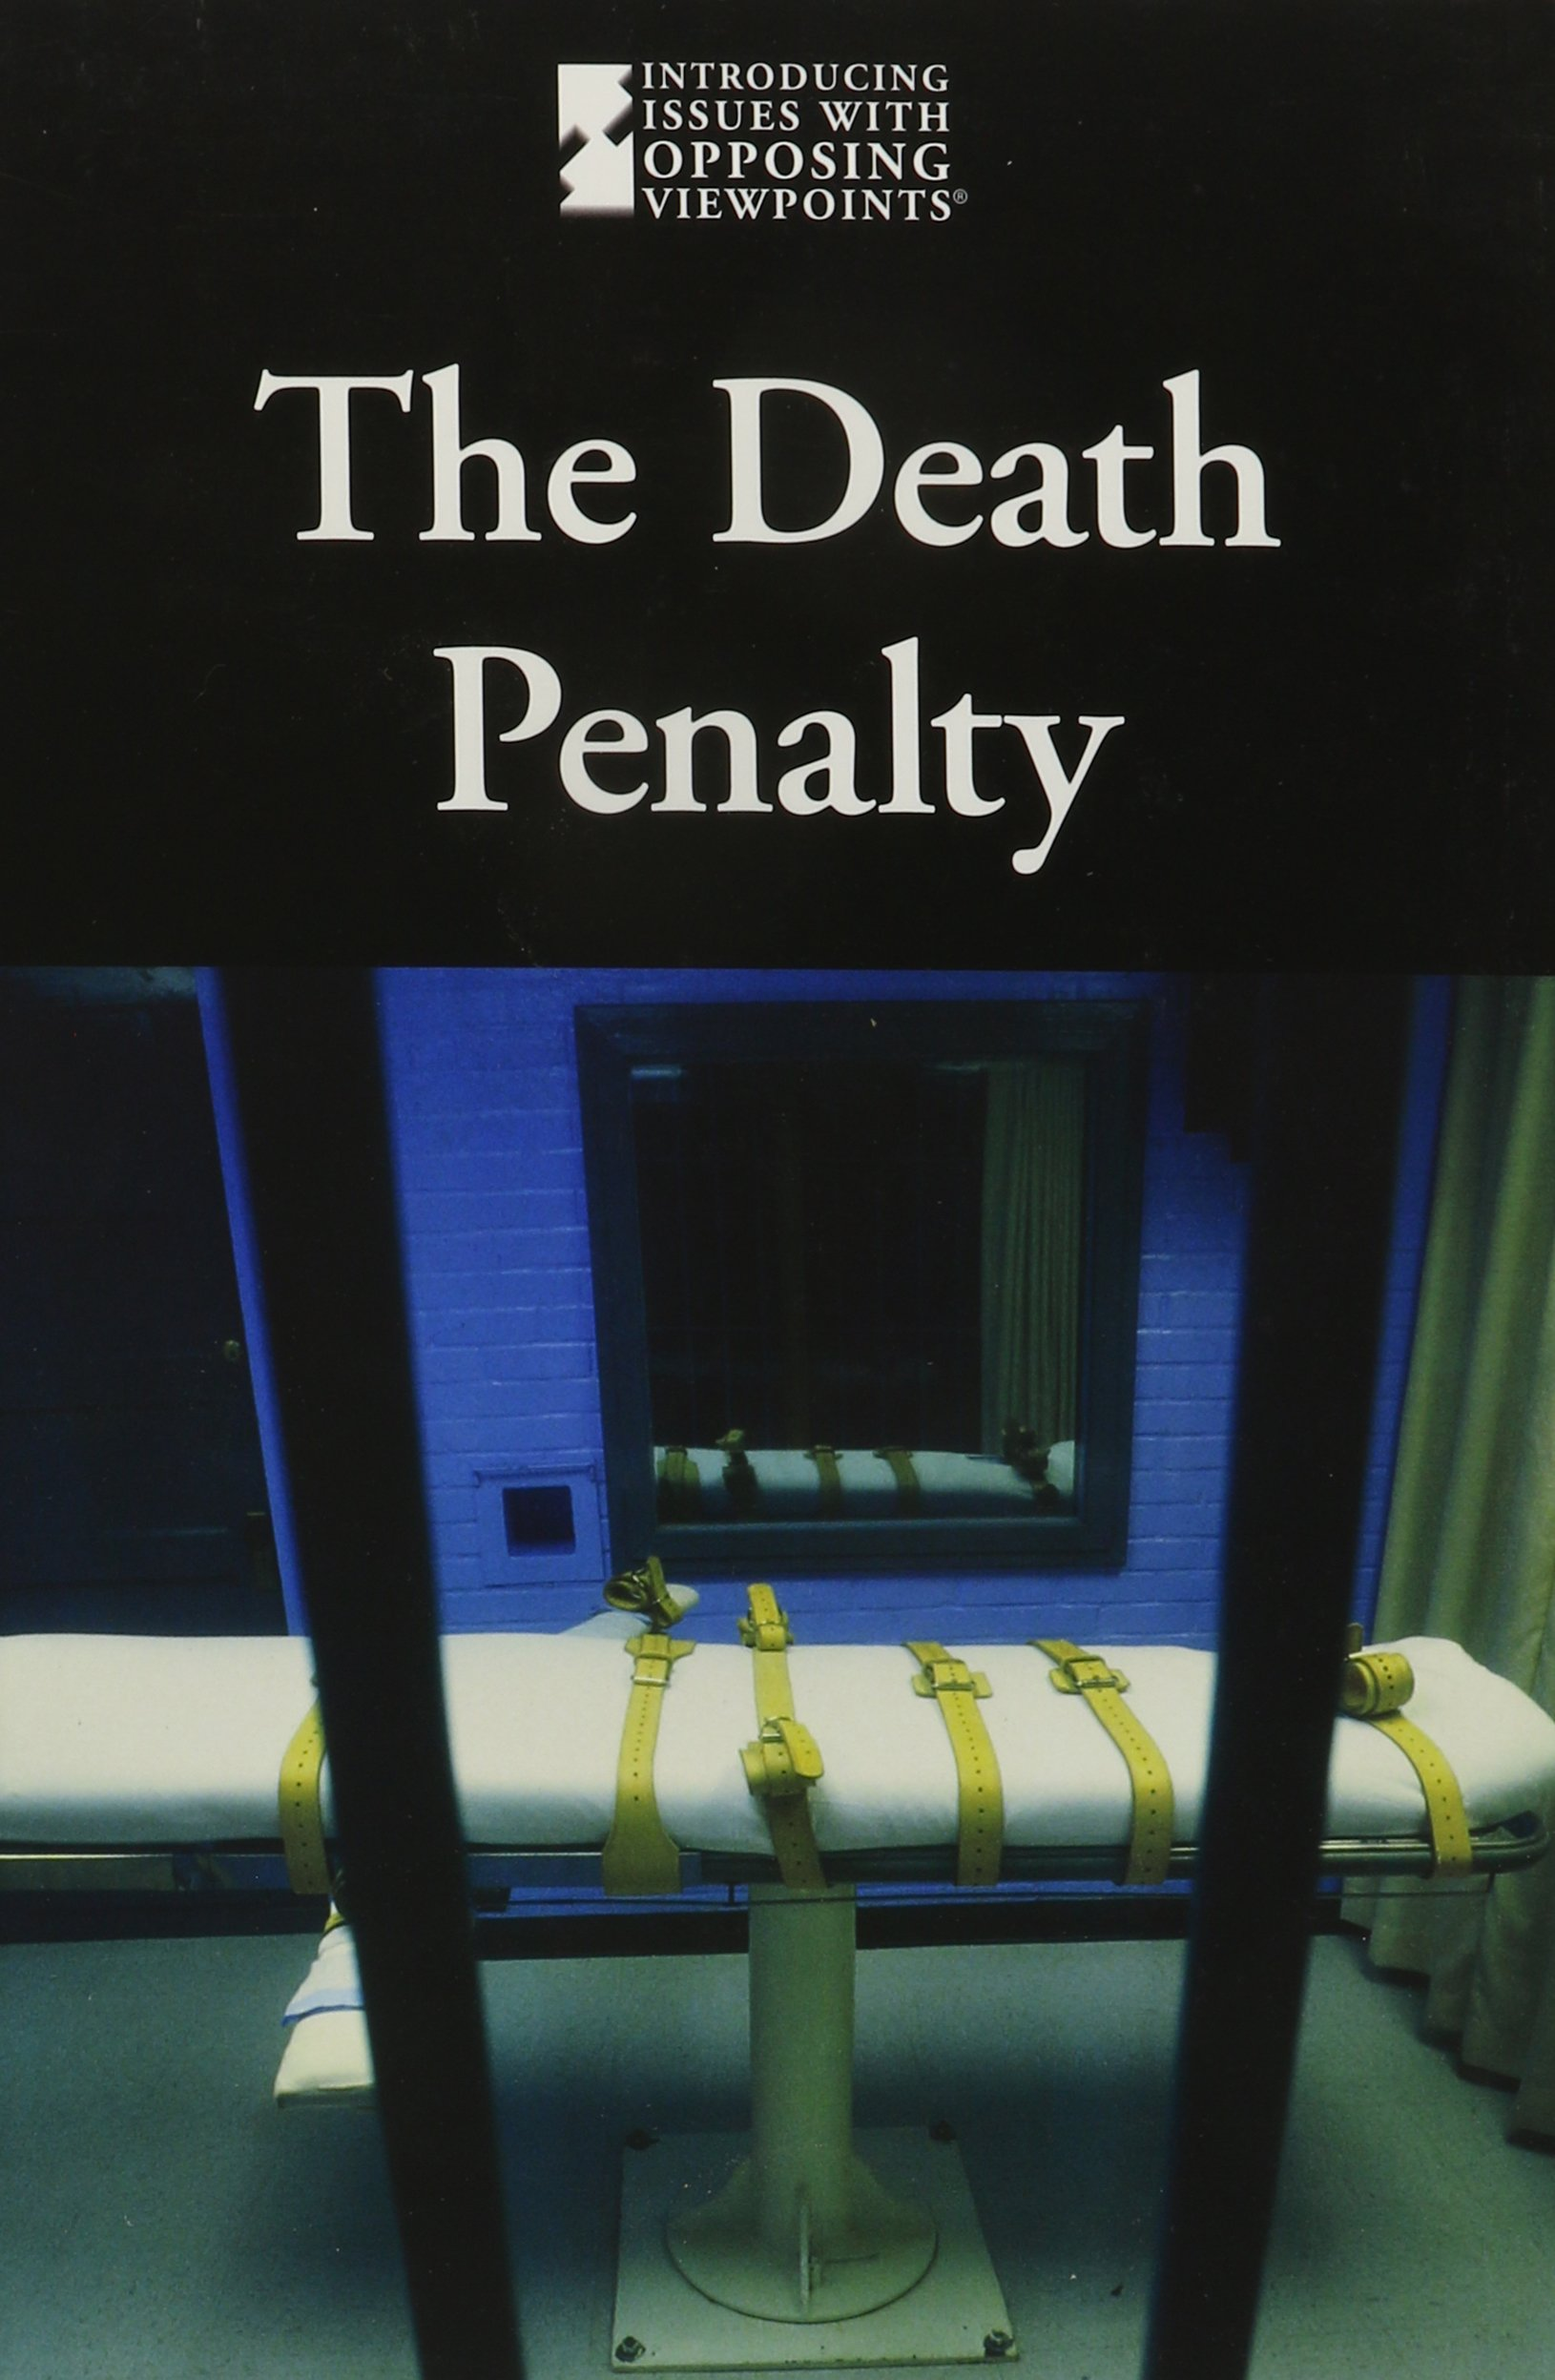 the death penalty introducing issues opposing viewpoints the death penalty introducing issues opposing viewpoints lauri s friedman 9780737749380 amazon com books